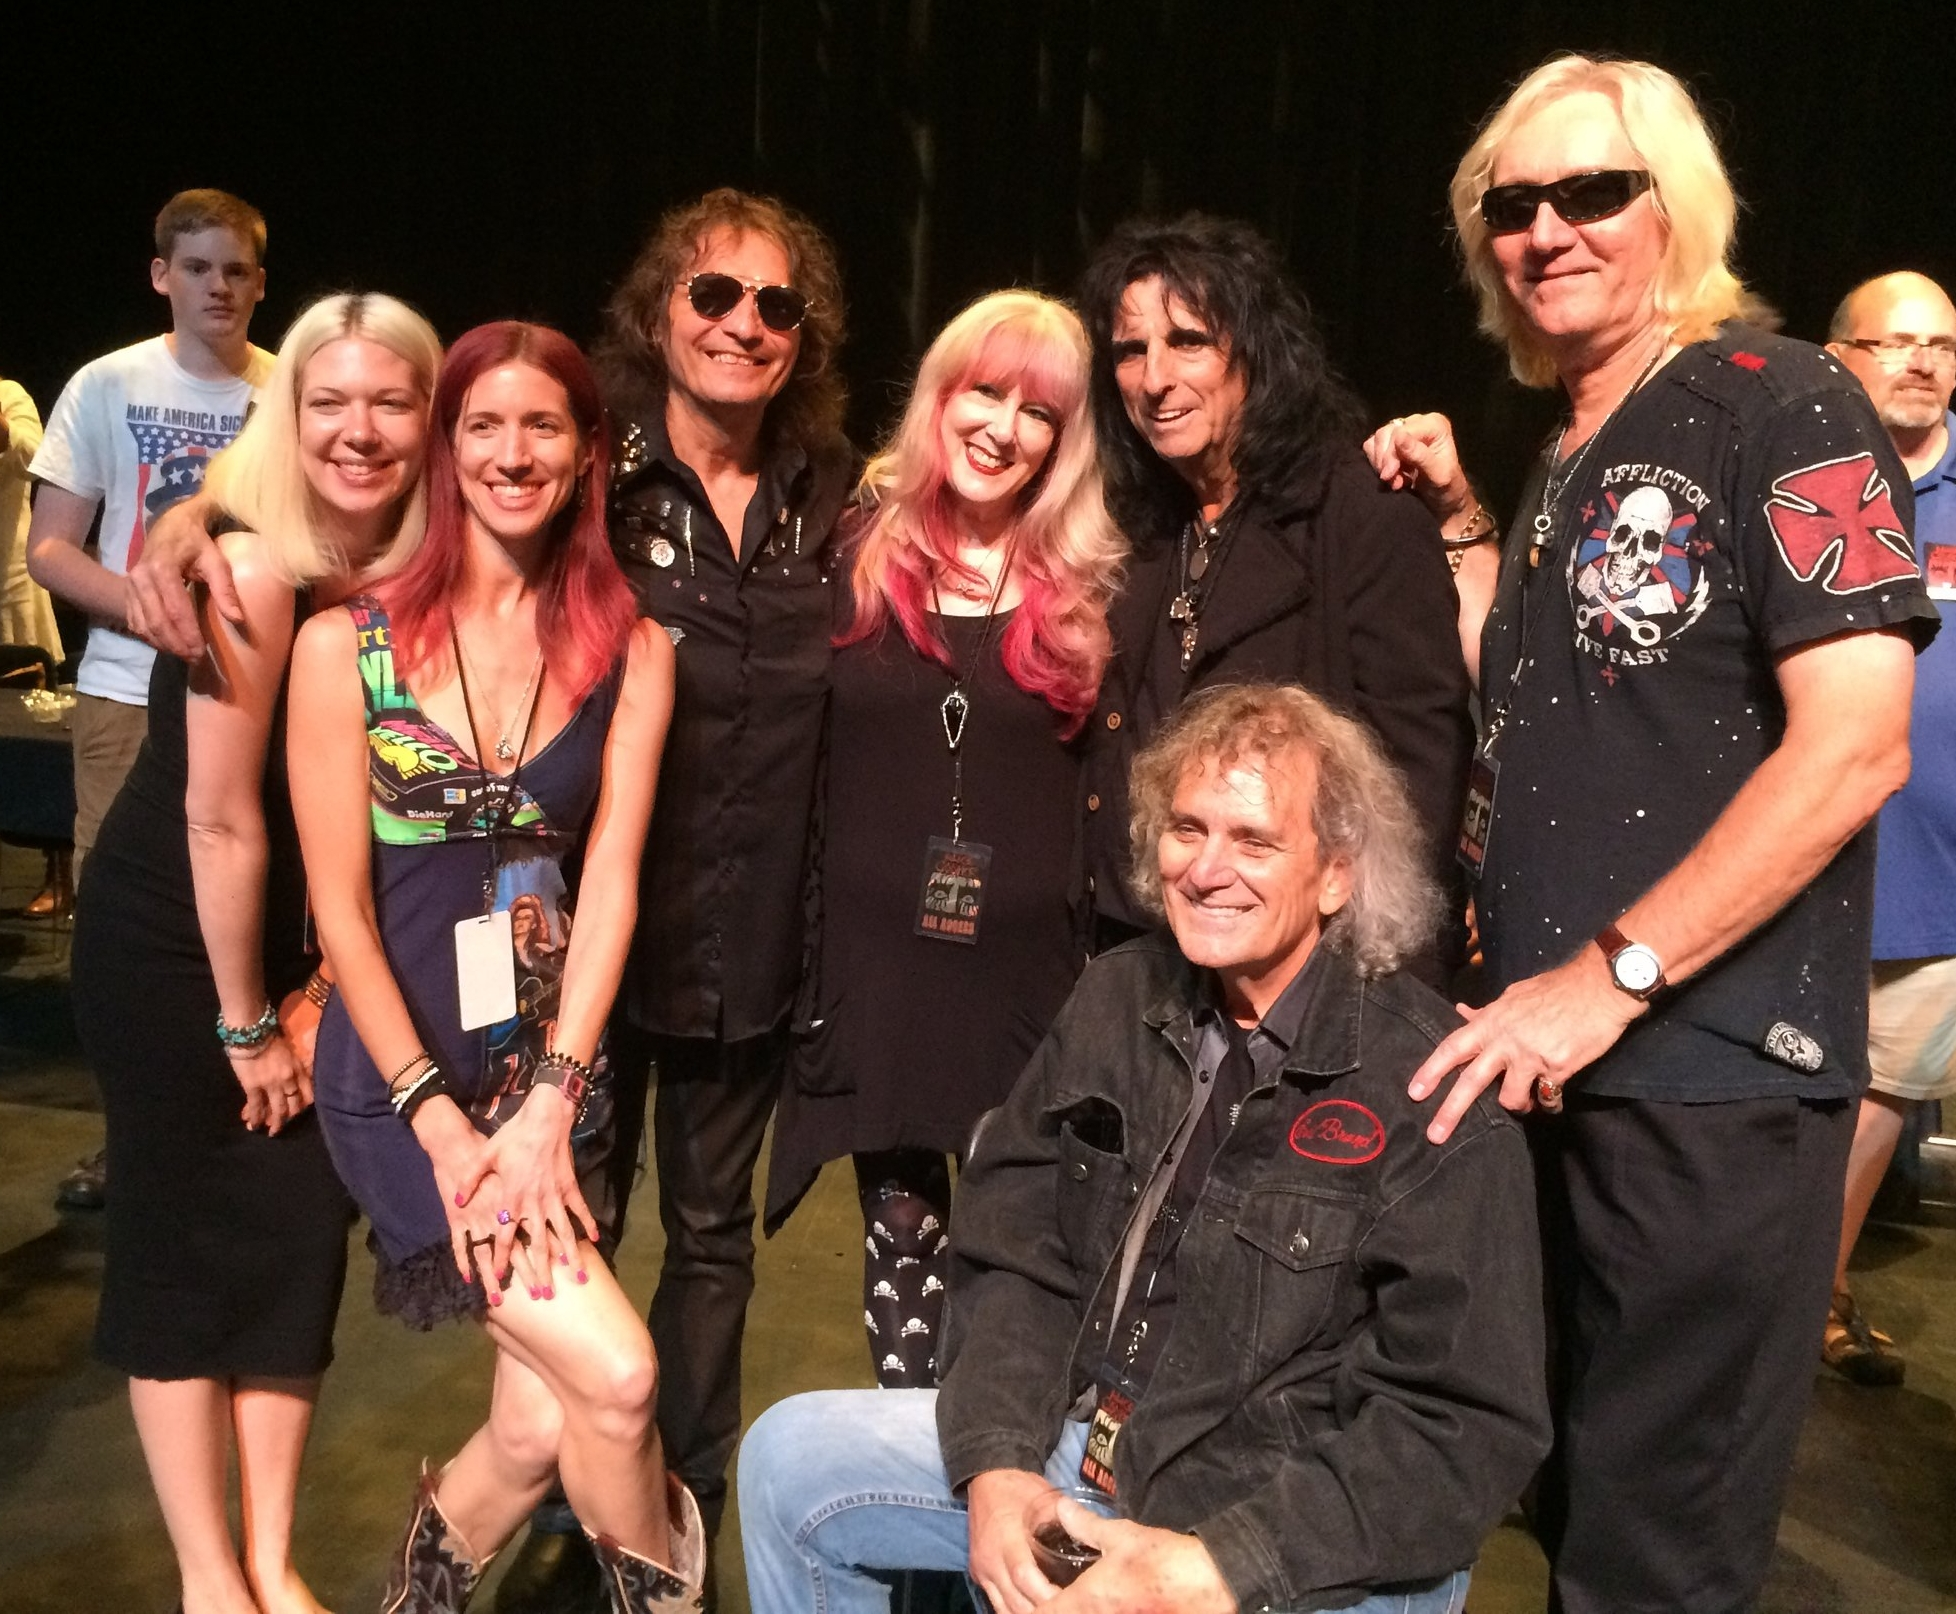 Dunaway family and Alice Cooper group backstage after the TPAC show. L to R, Chelsea, Renee, Dennis, Cindy, Alice, Michael, Neal.